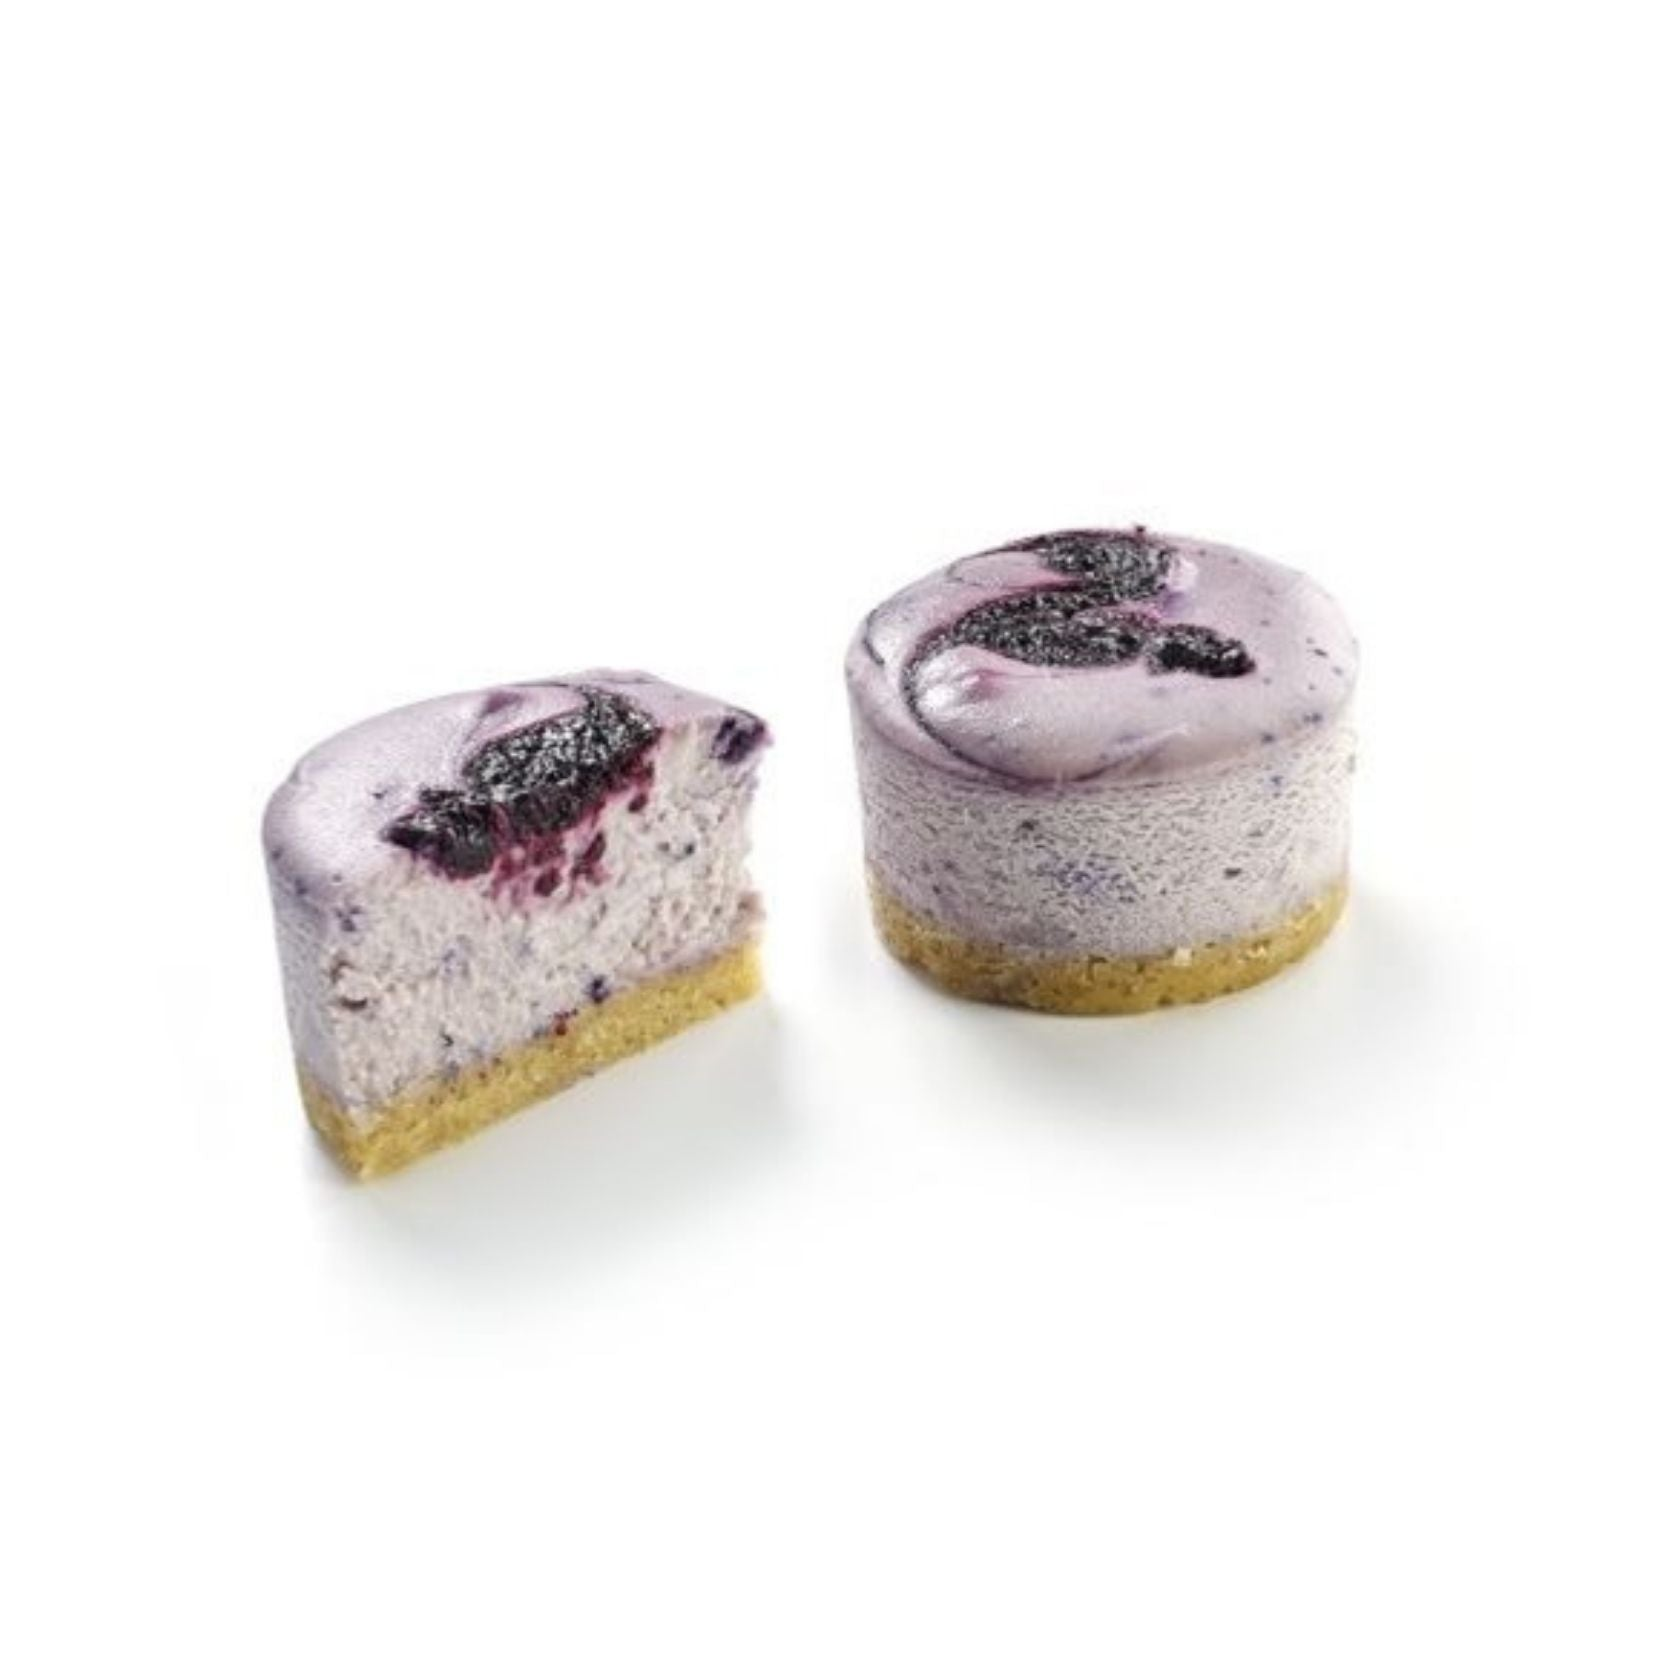 Marbled Blueberry Cheese Cake - 85g